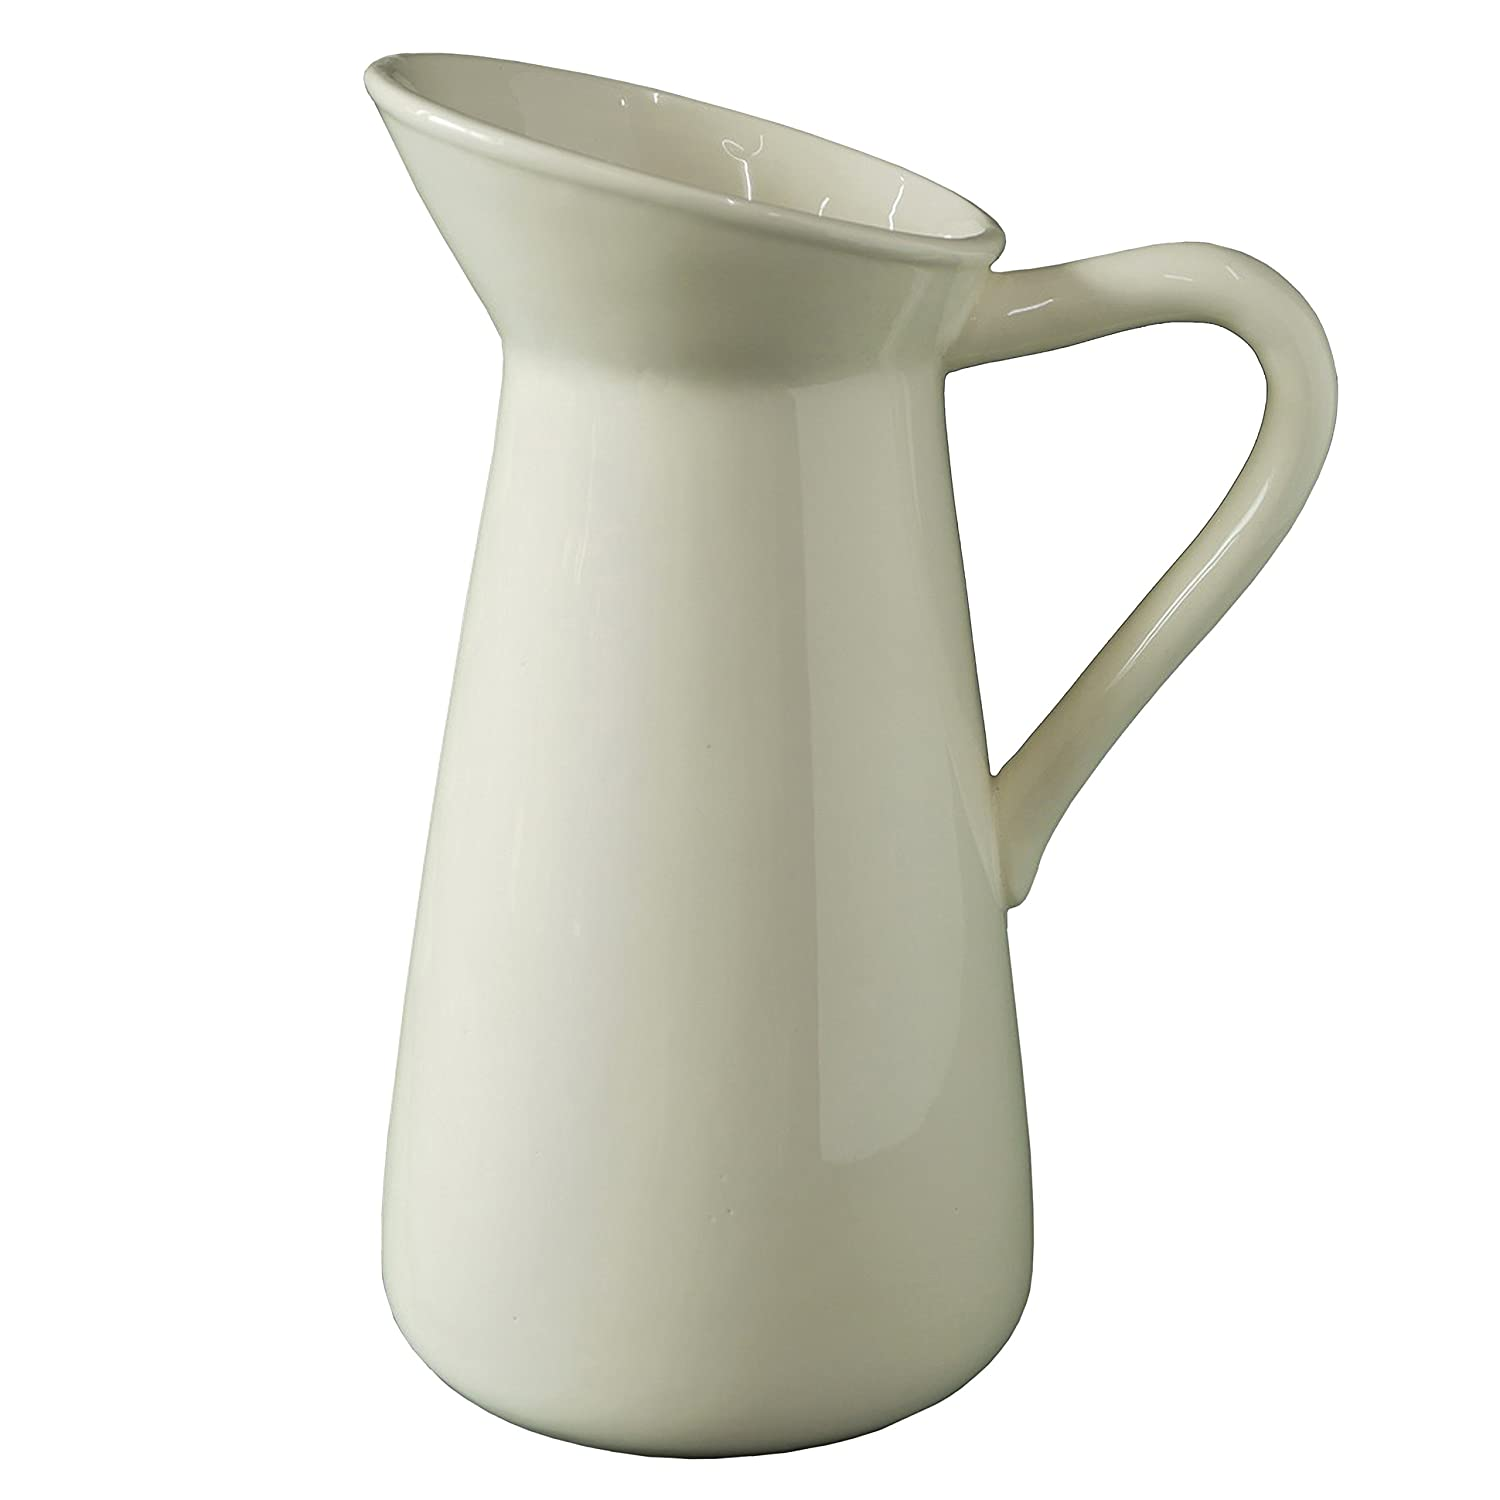 Christmas Tablescape Décor - Hosley's white ceramic country pitcher